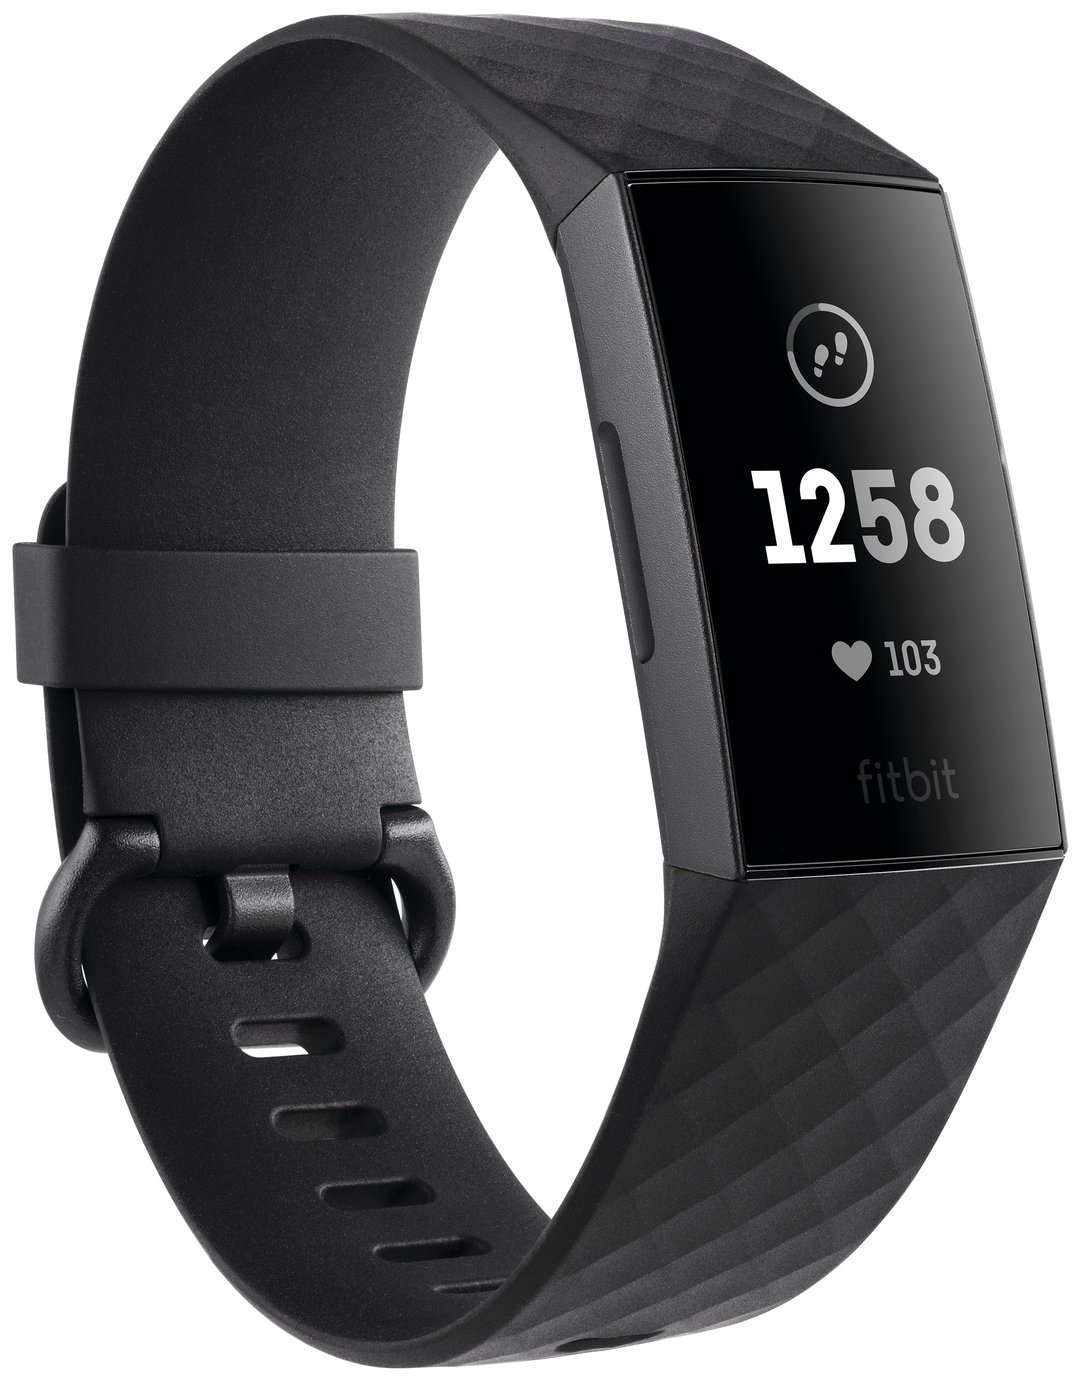 Fitbit Charge 3 Fitness Tracker - Graphite Black